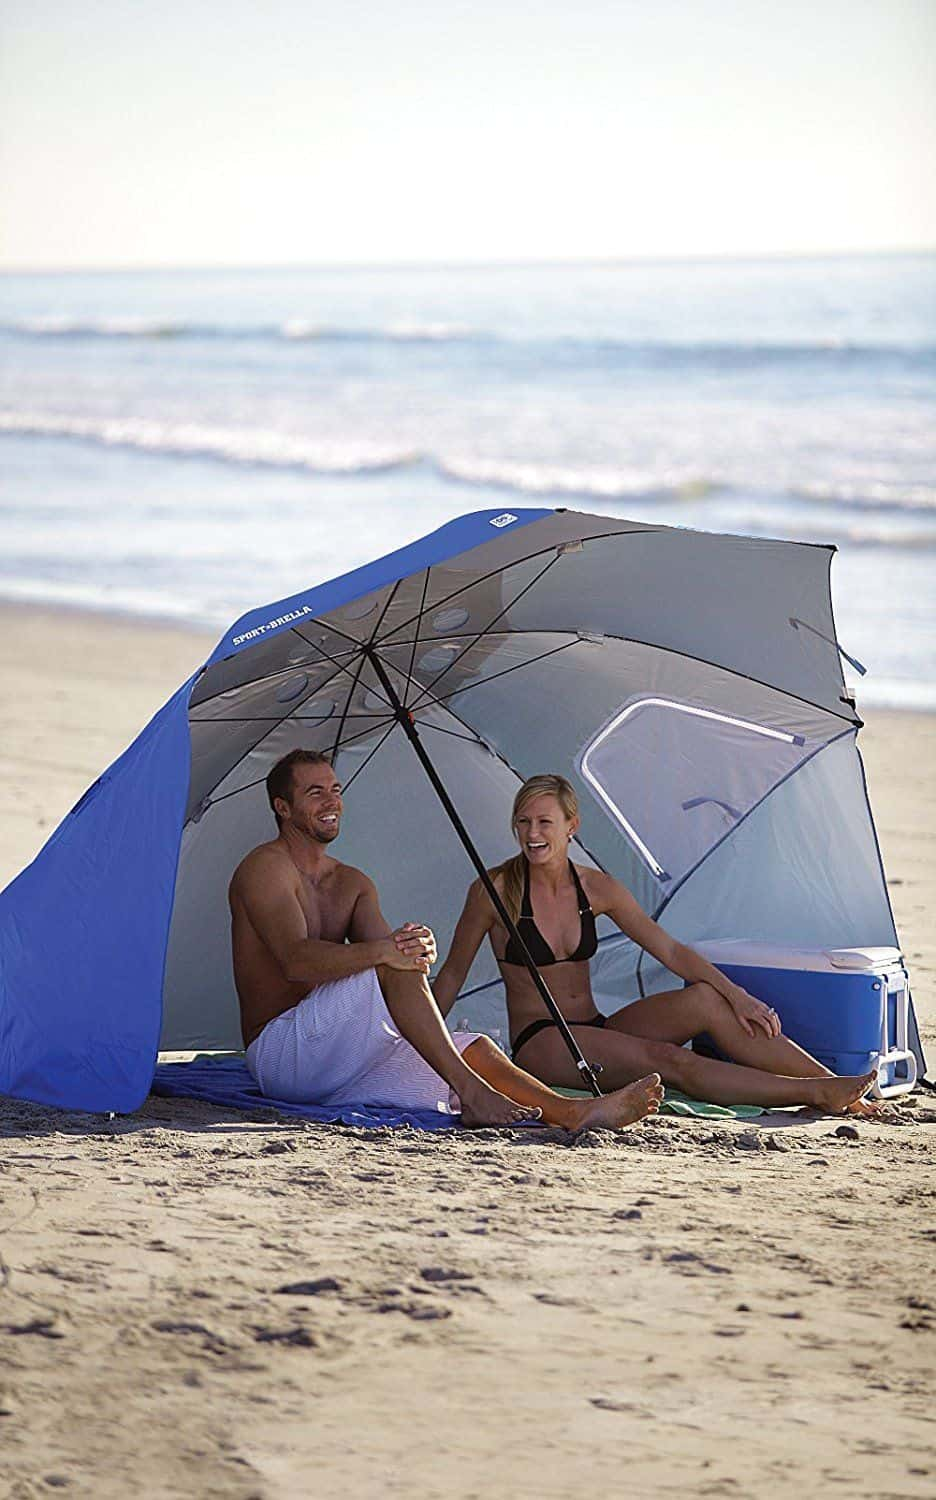 Don't get burnt this vacation. The Sport-Brella beach shade has side extensions to give really good coverage from the sun